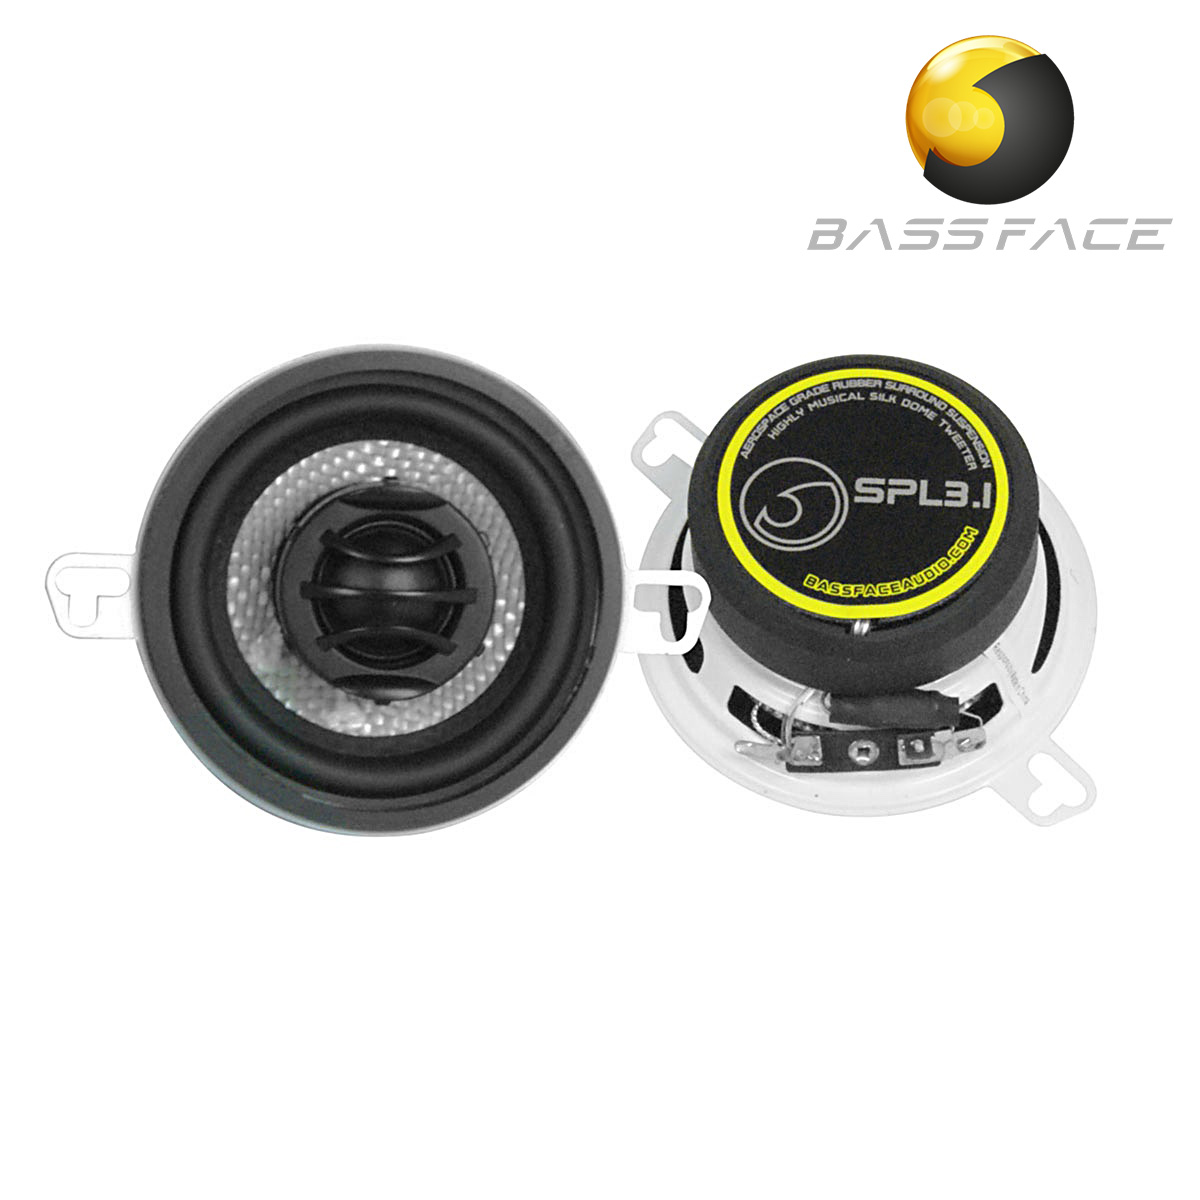 Bassface Car Audio The Specialists Multi Channel Lifiers Electronics On Speakers Wiring Kit Spl31 35 8cm 4ohm Coaxial 2 Way Speaker Pair 100w Rms